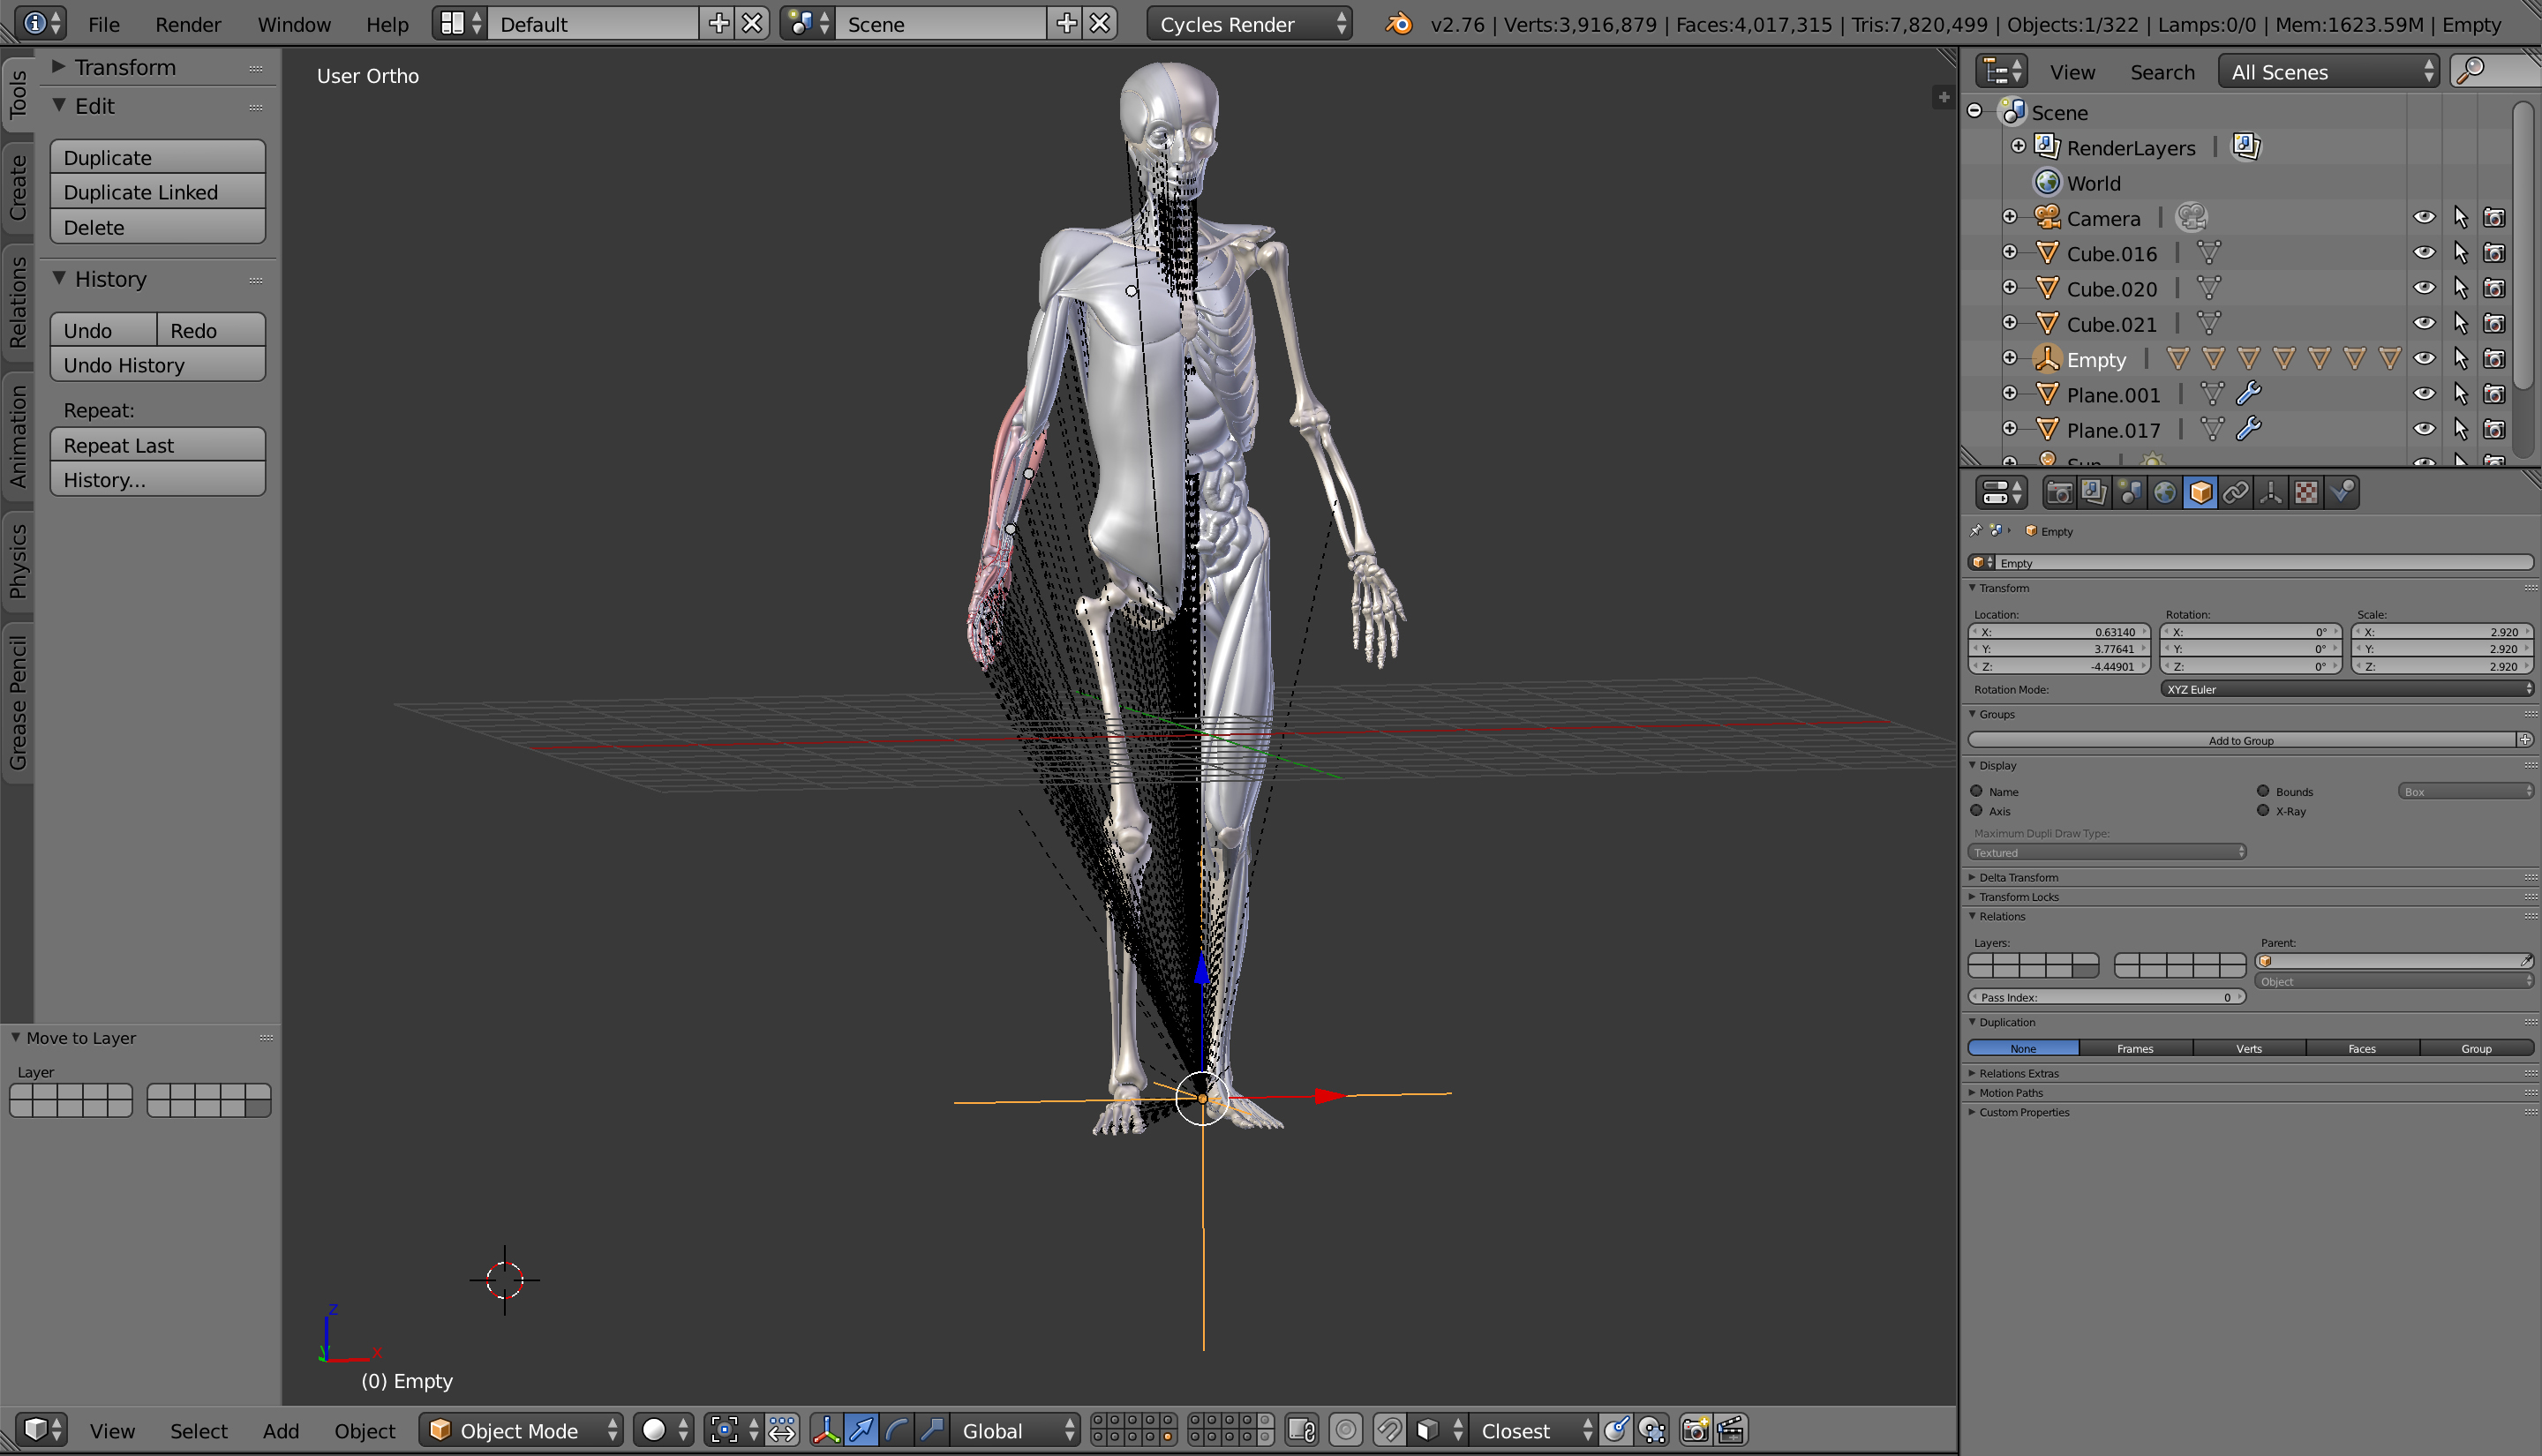 10 ways to improve your human anatomy modelling | Creative Bloq